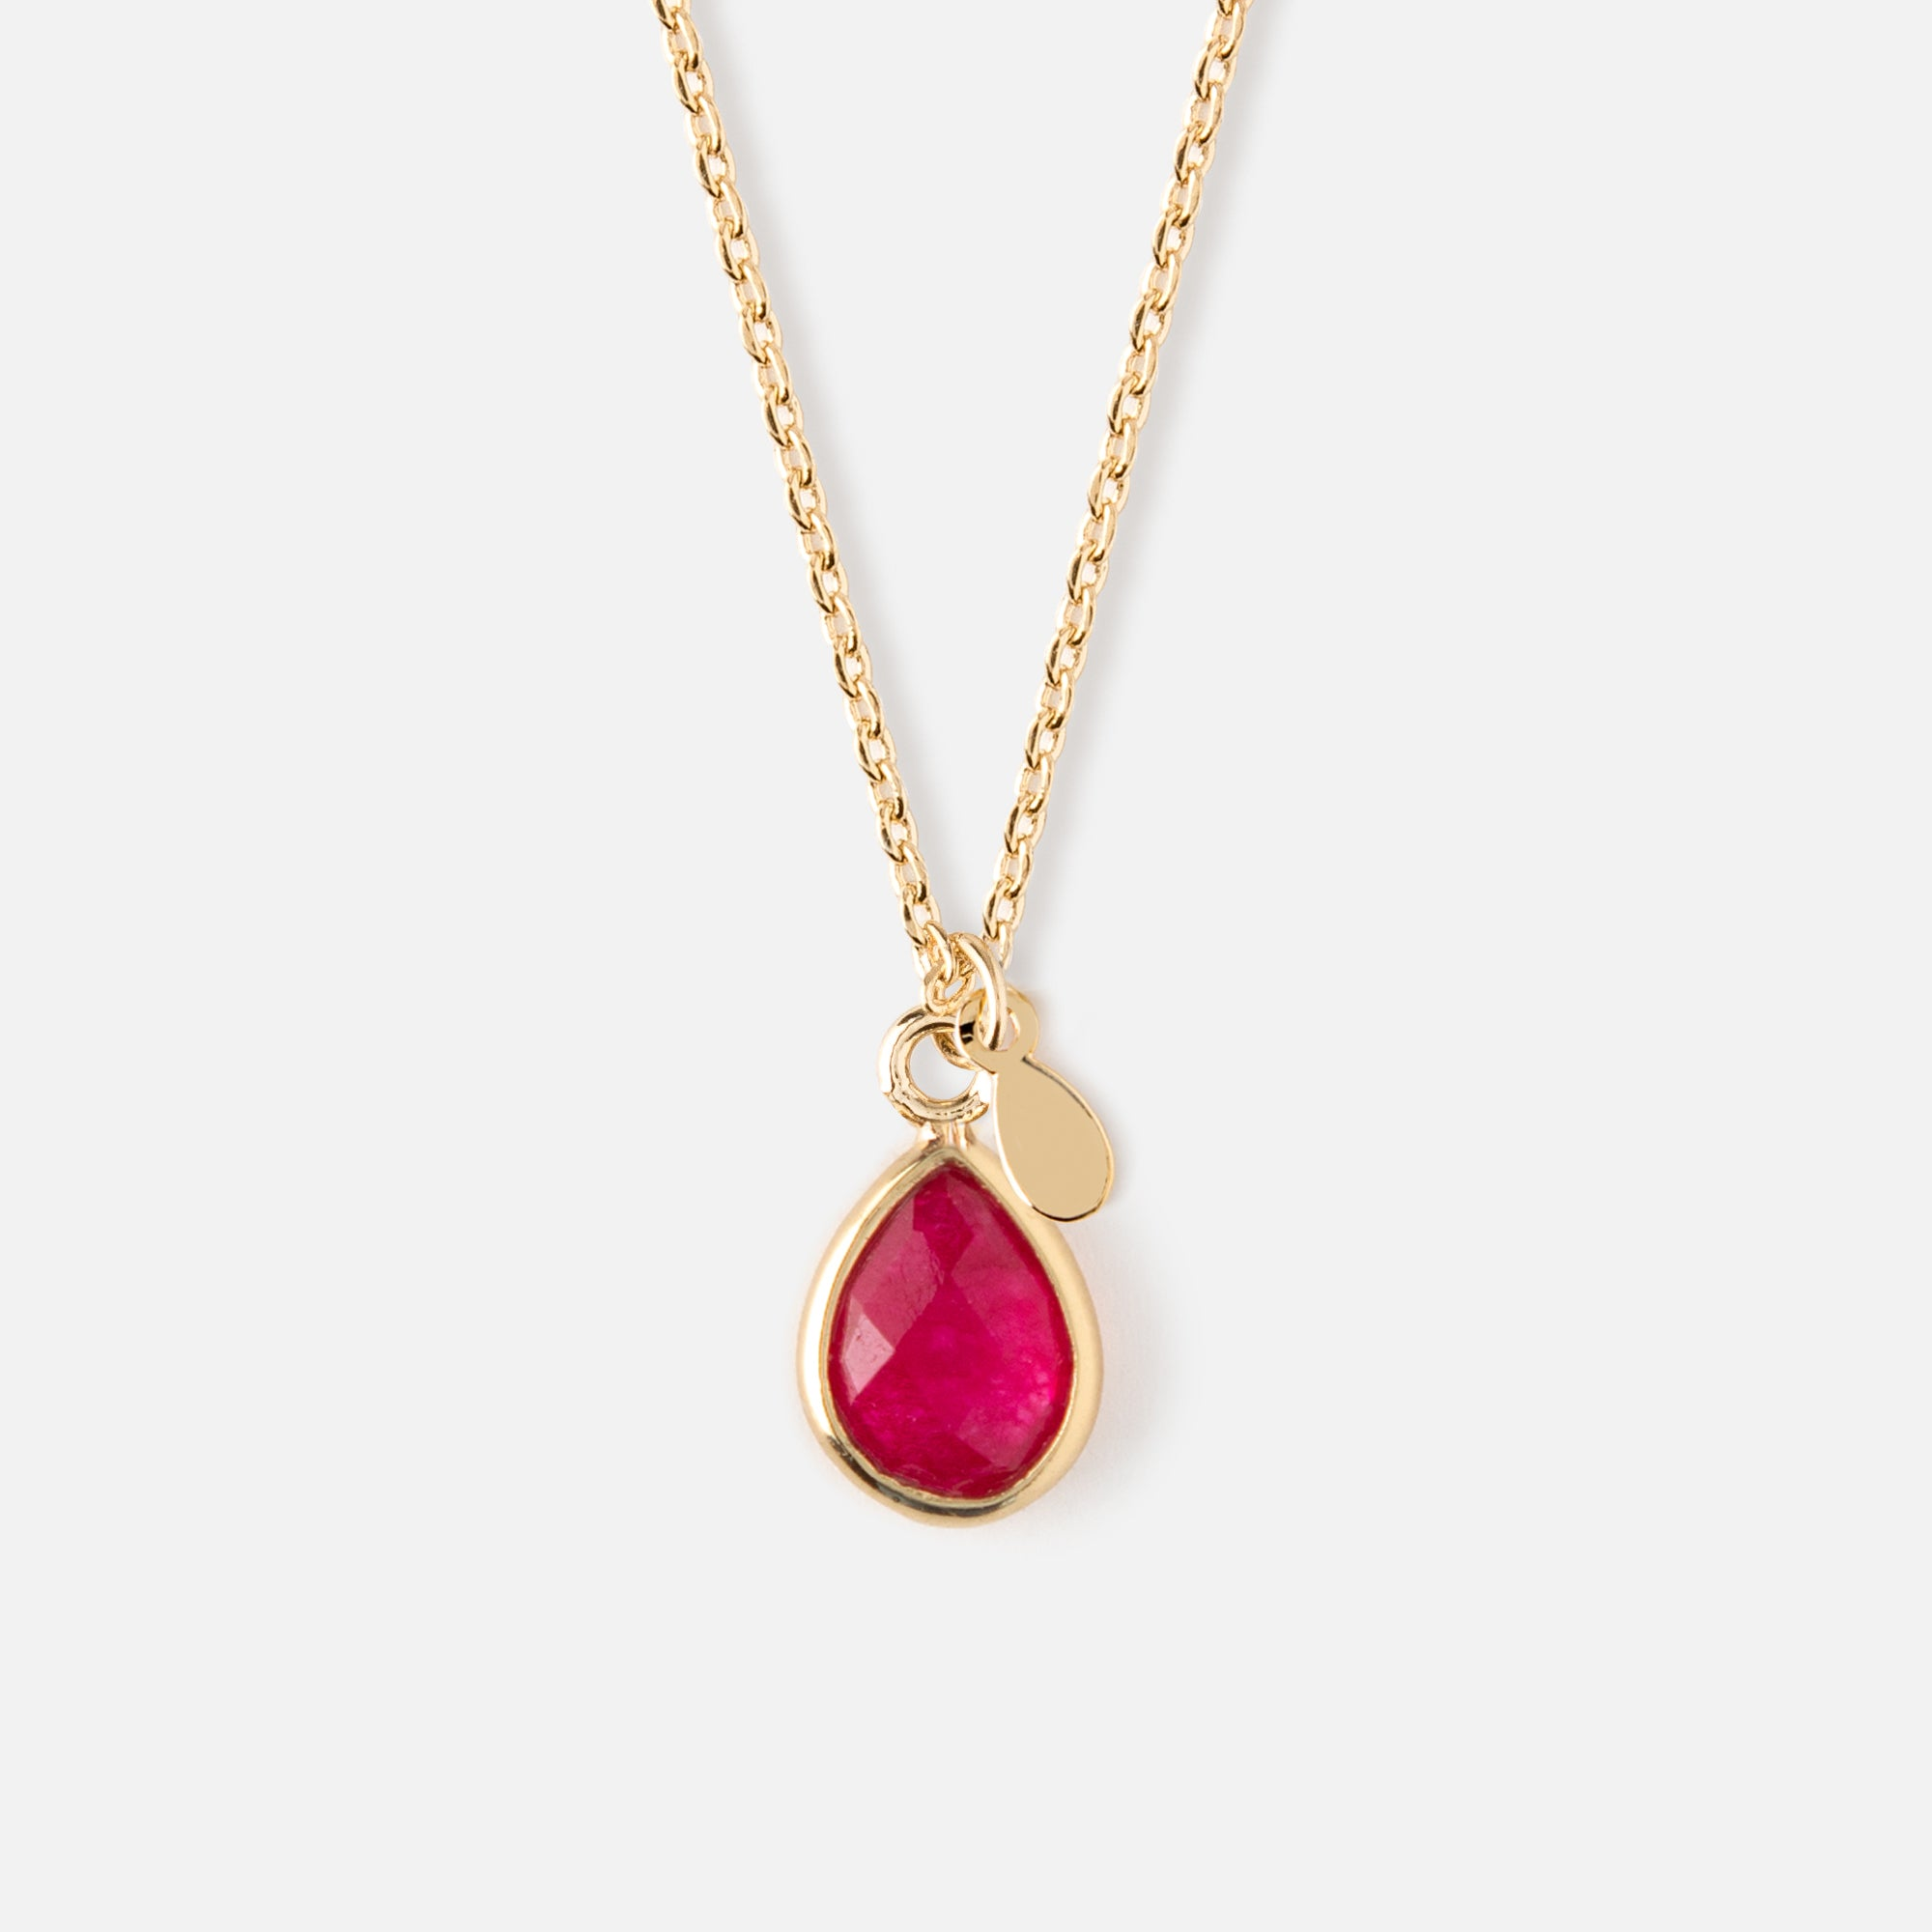 Semi Precious Teardrop Ditsy Necklace - Ruby